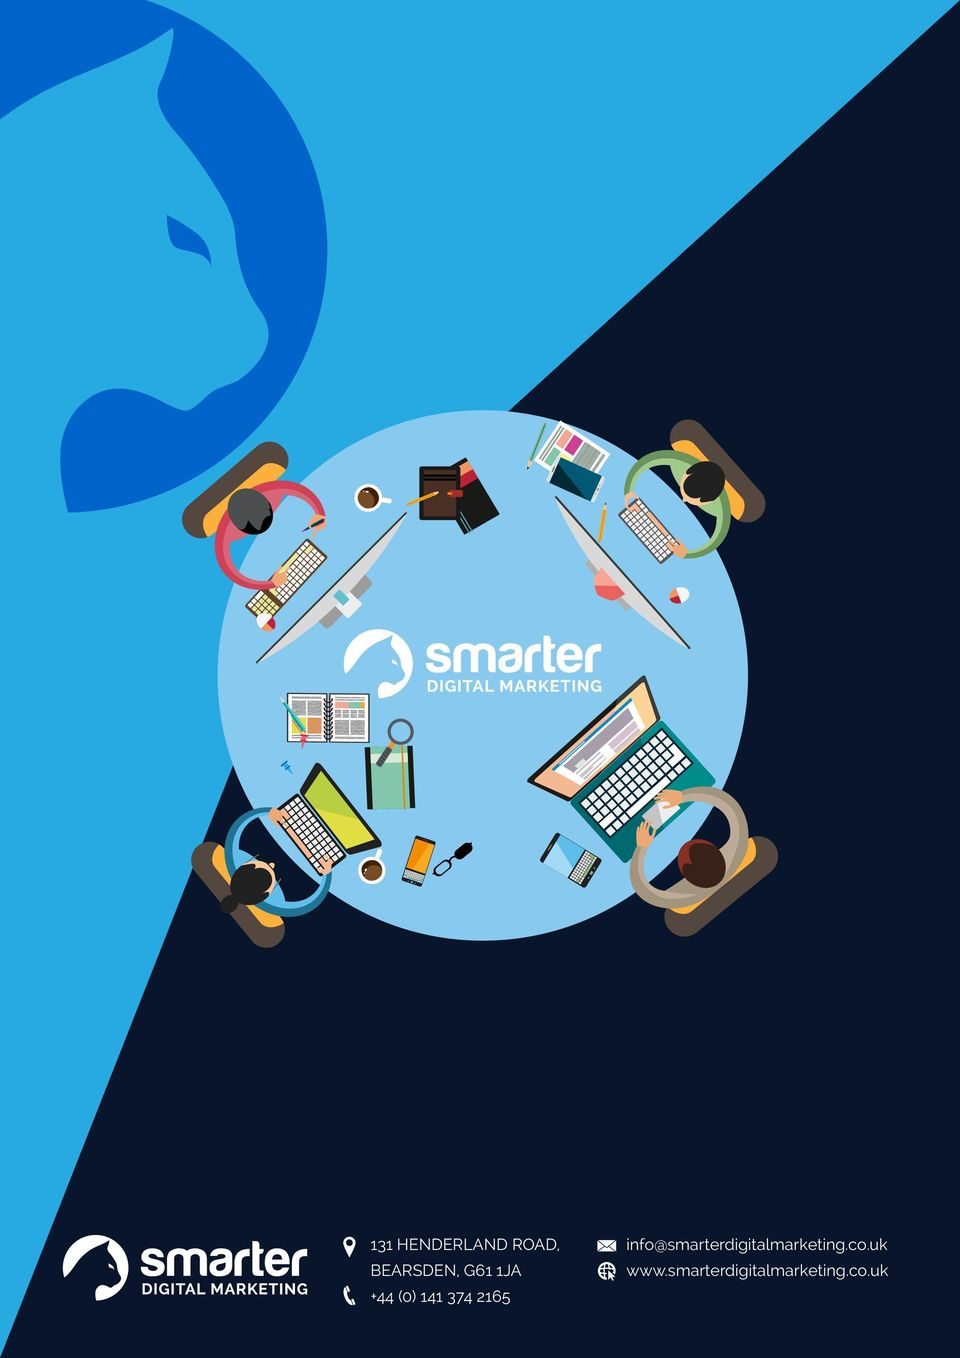 info@smarterdigitalmarketing.co.